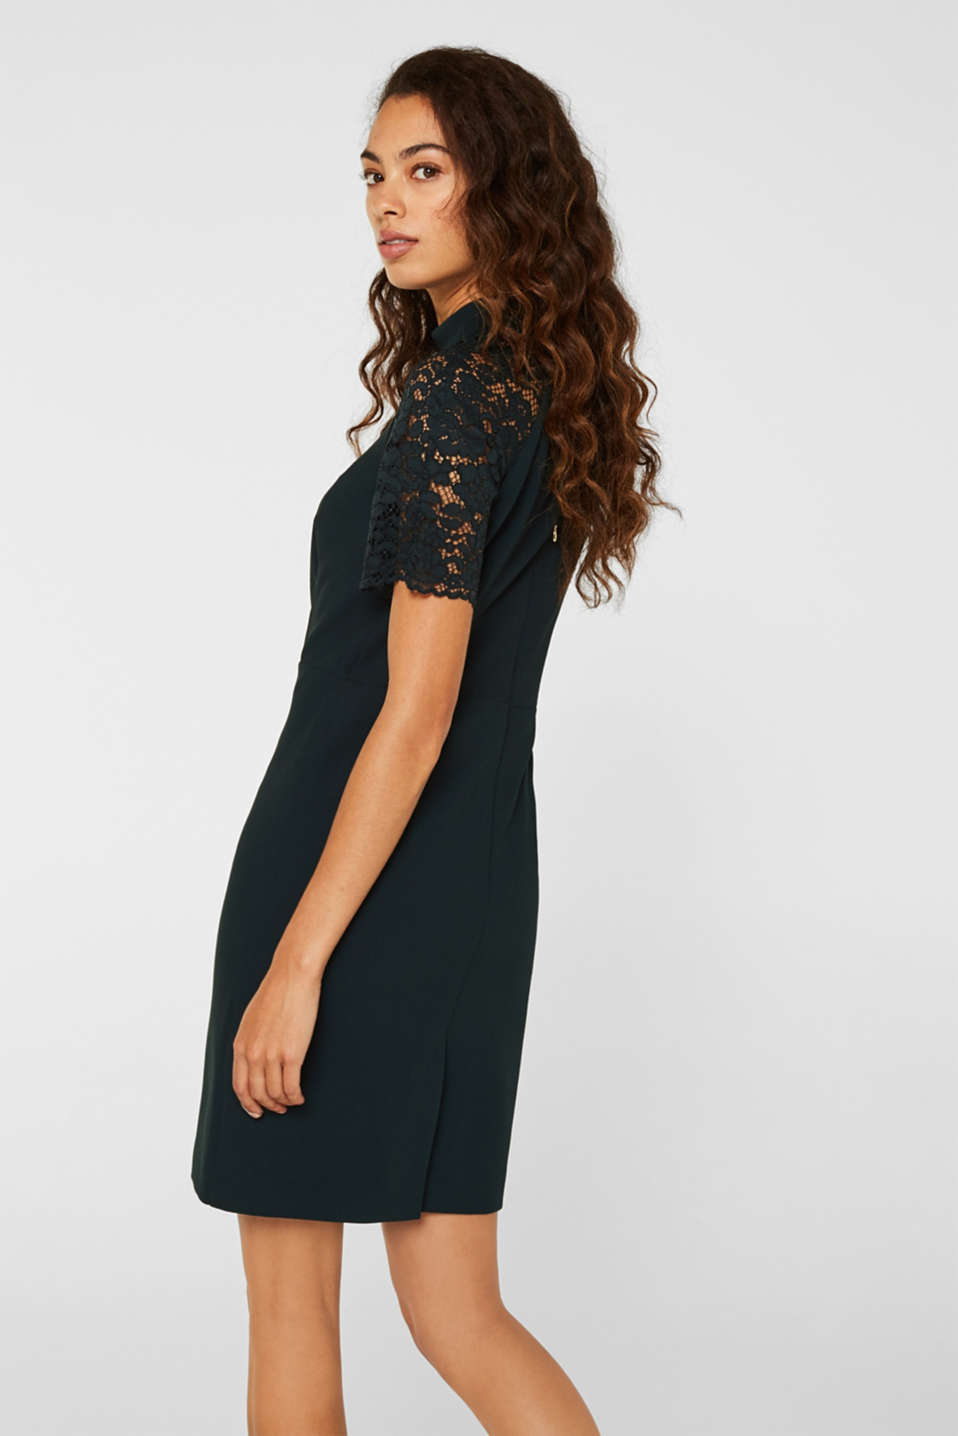 Stretch dress with band collar and lace, DARK TEAL GREEN, detail image number 3